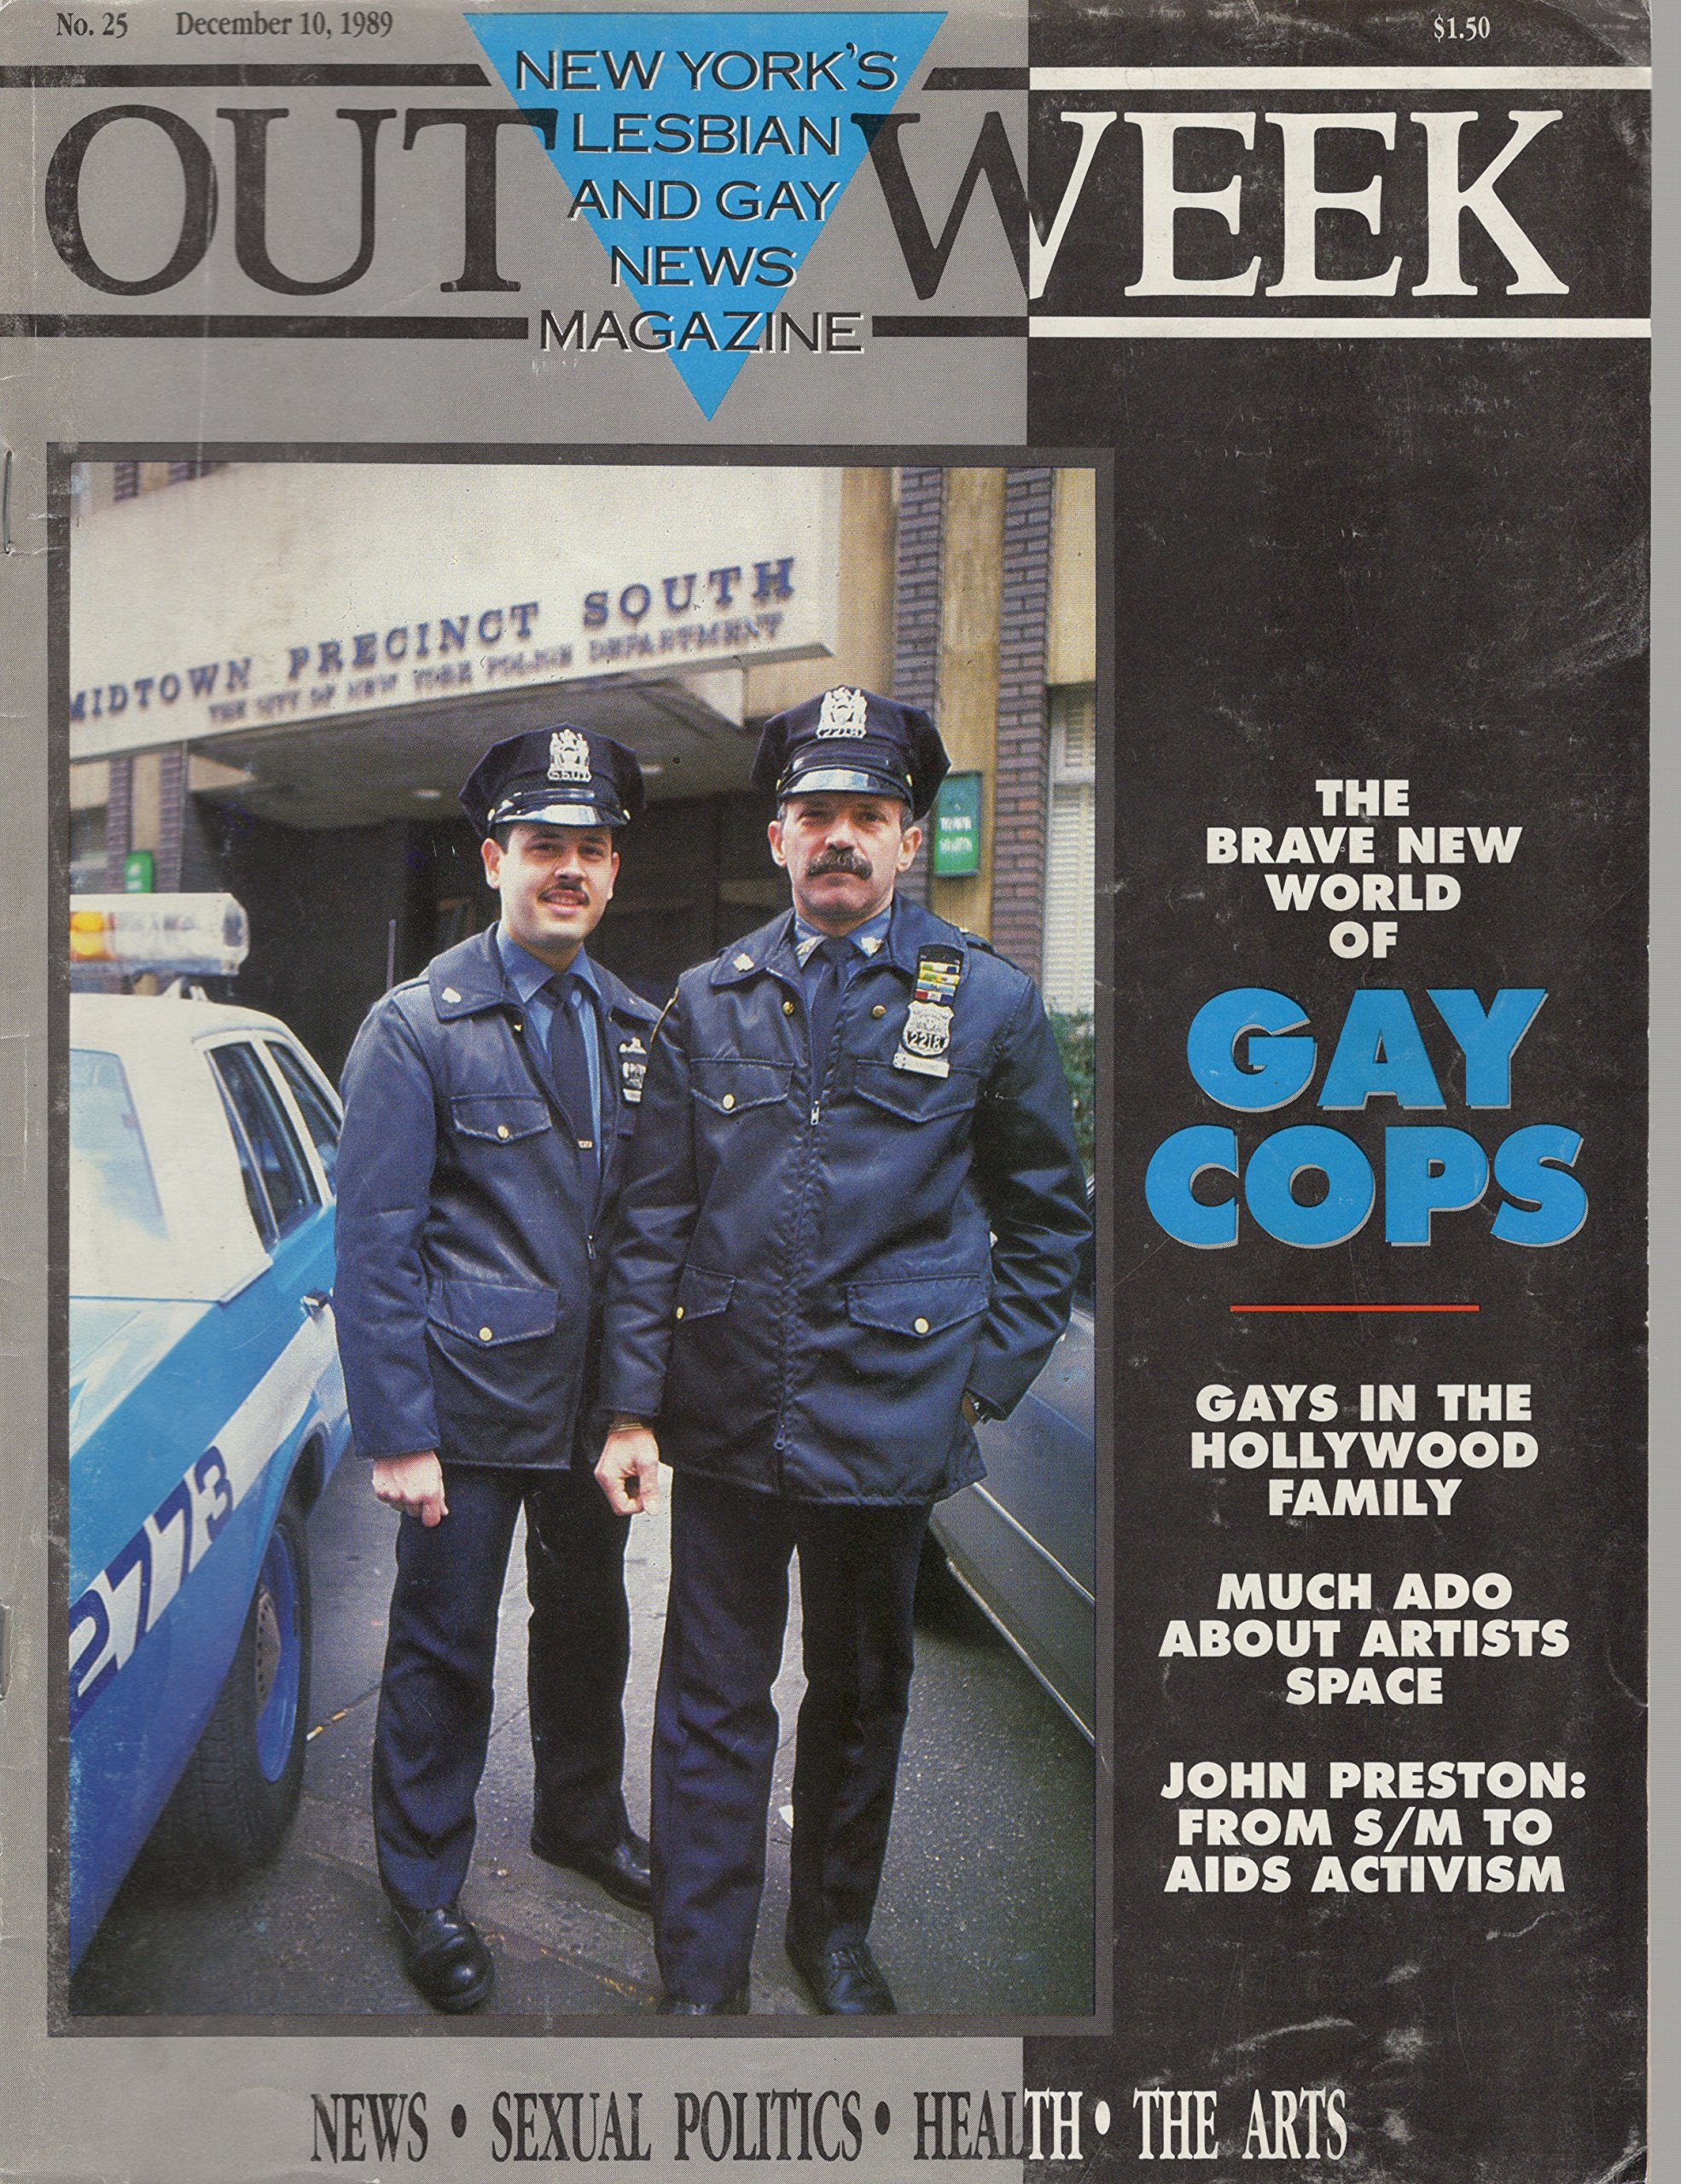 OUTWEEK, New York's Lesbian and Gay Newsmagazine, No. 25, December 10, 1989  : The Brave New World of Gay Cops Single Issue Magazine – 1960